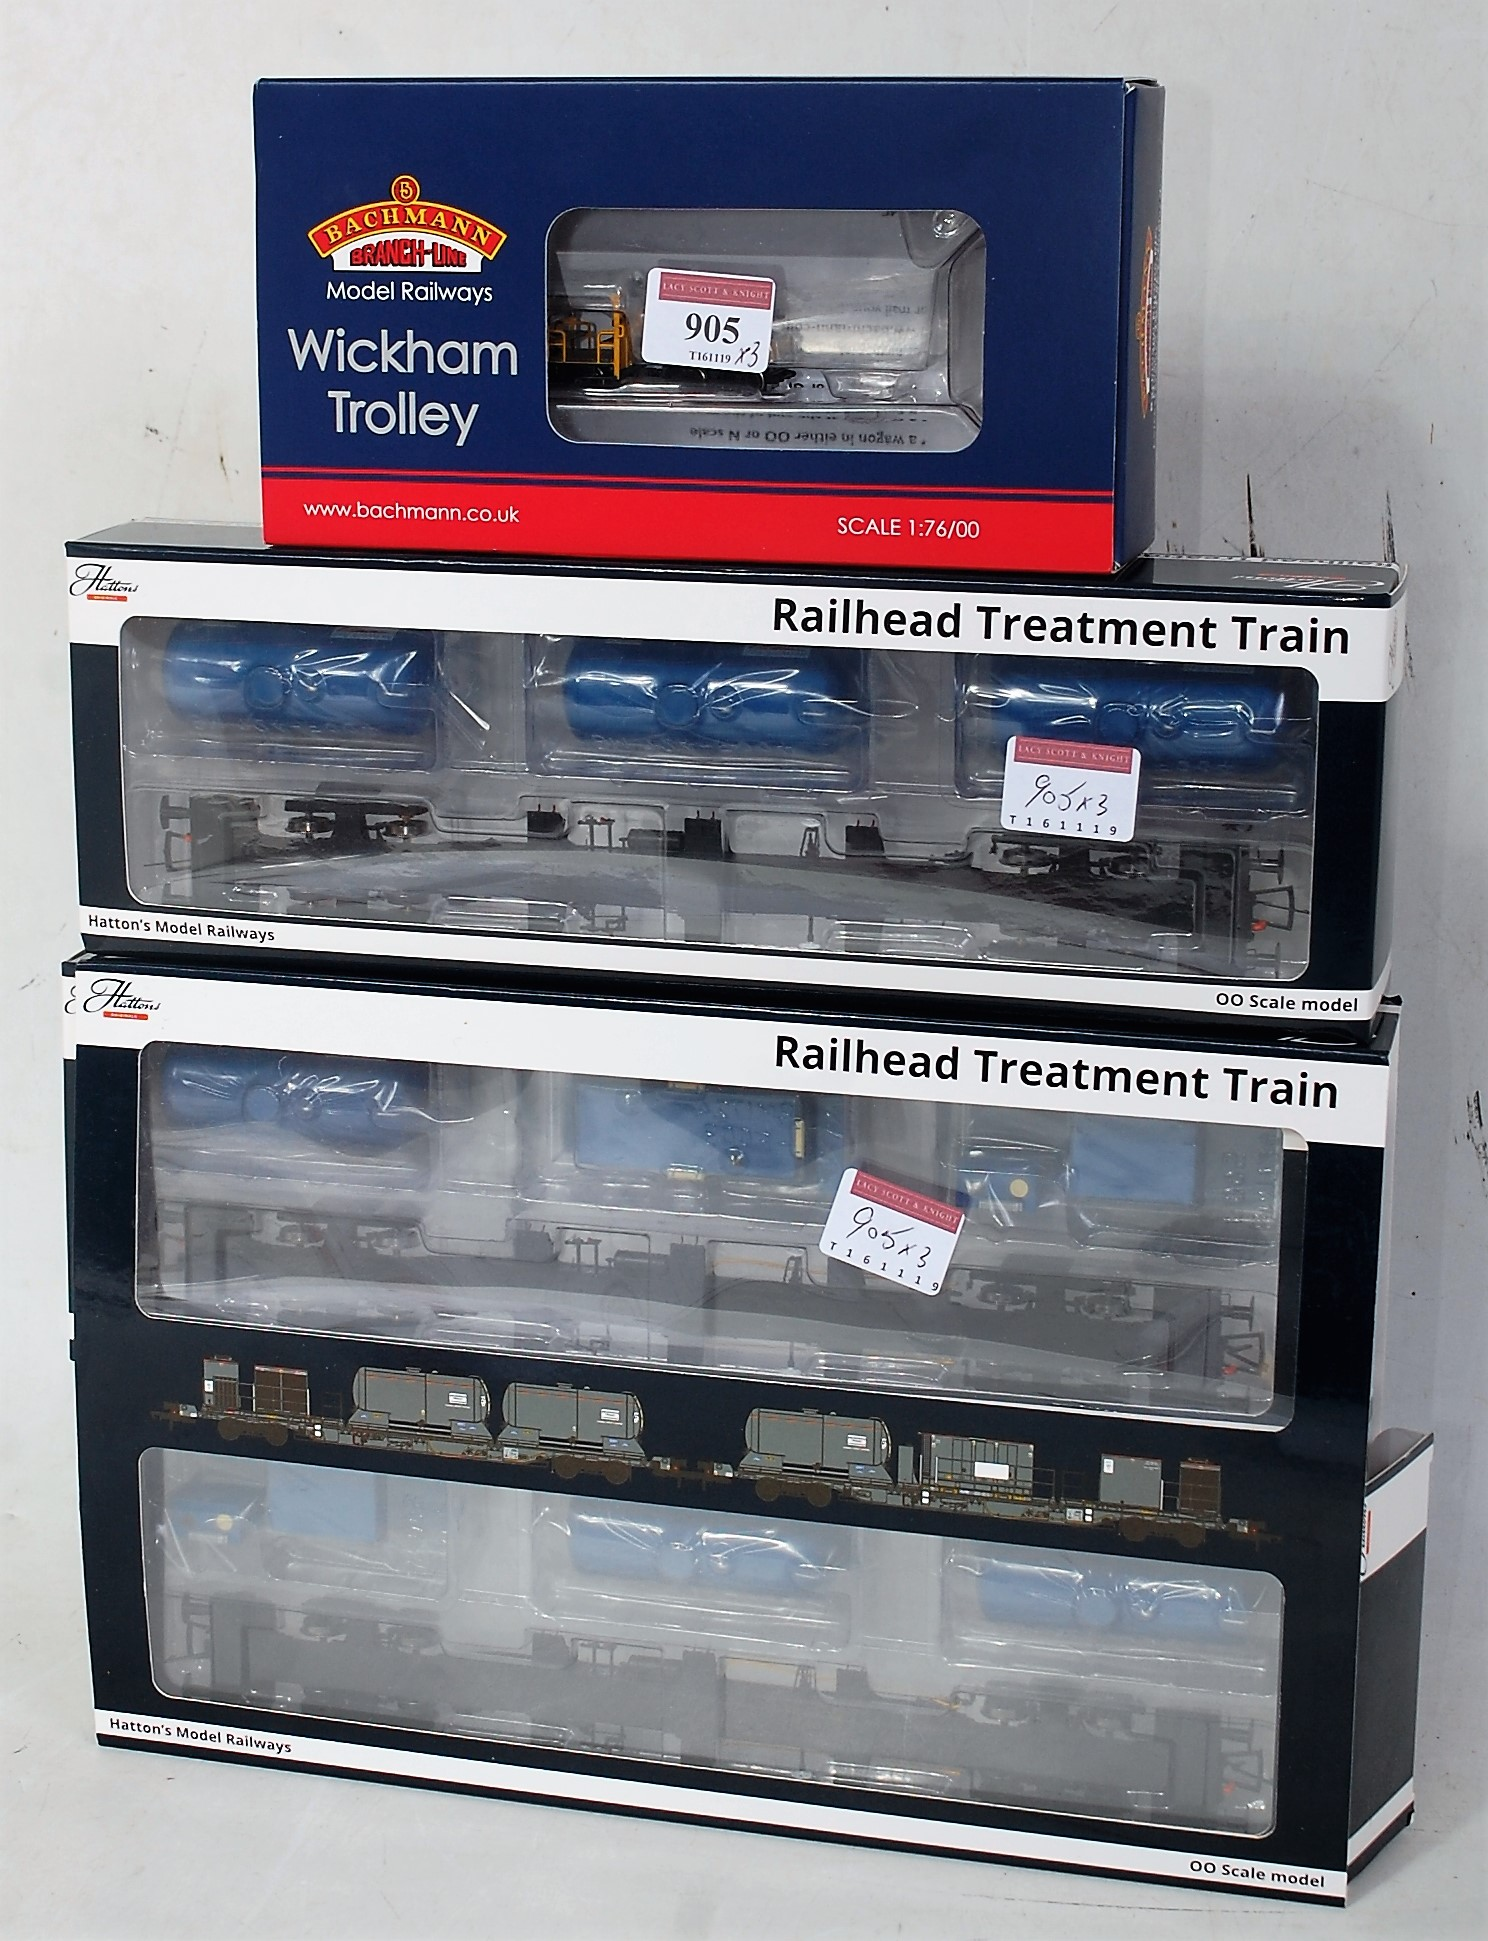 Lot 905 - A Bachmann 302-992 Wickham PW trolley car BR engineers yellow (M-BM), together with Dapol H4-RHTT-